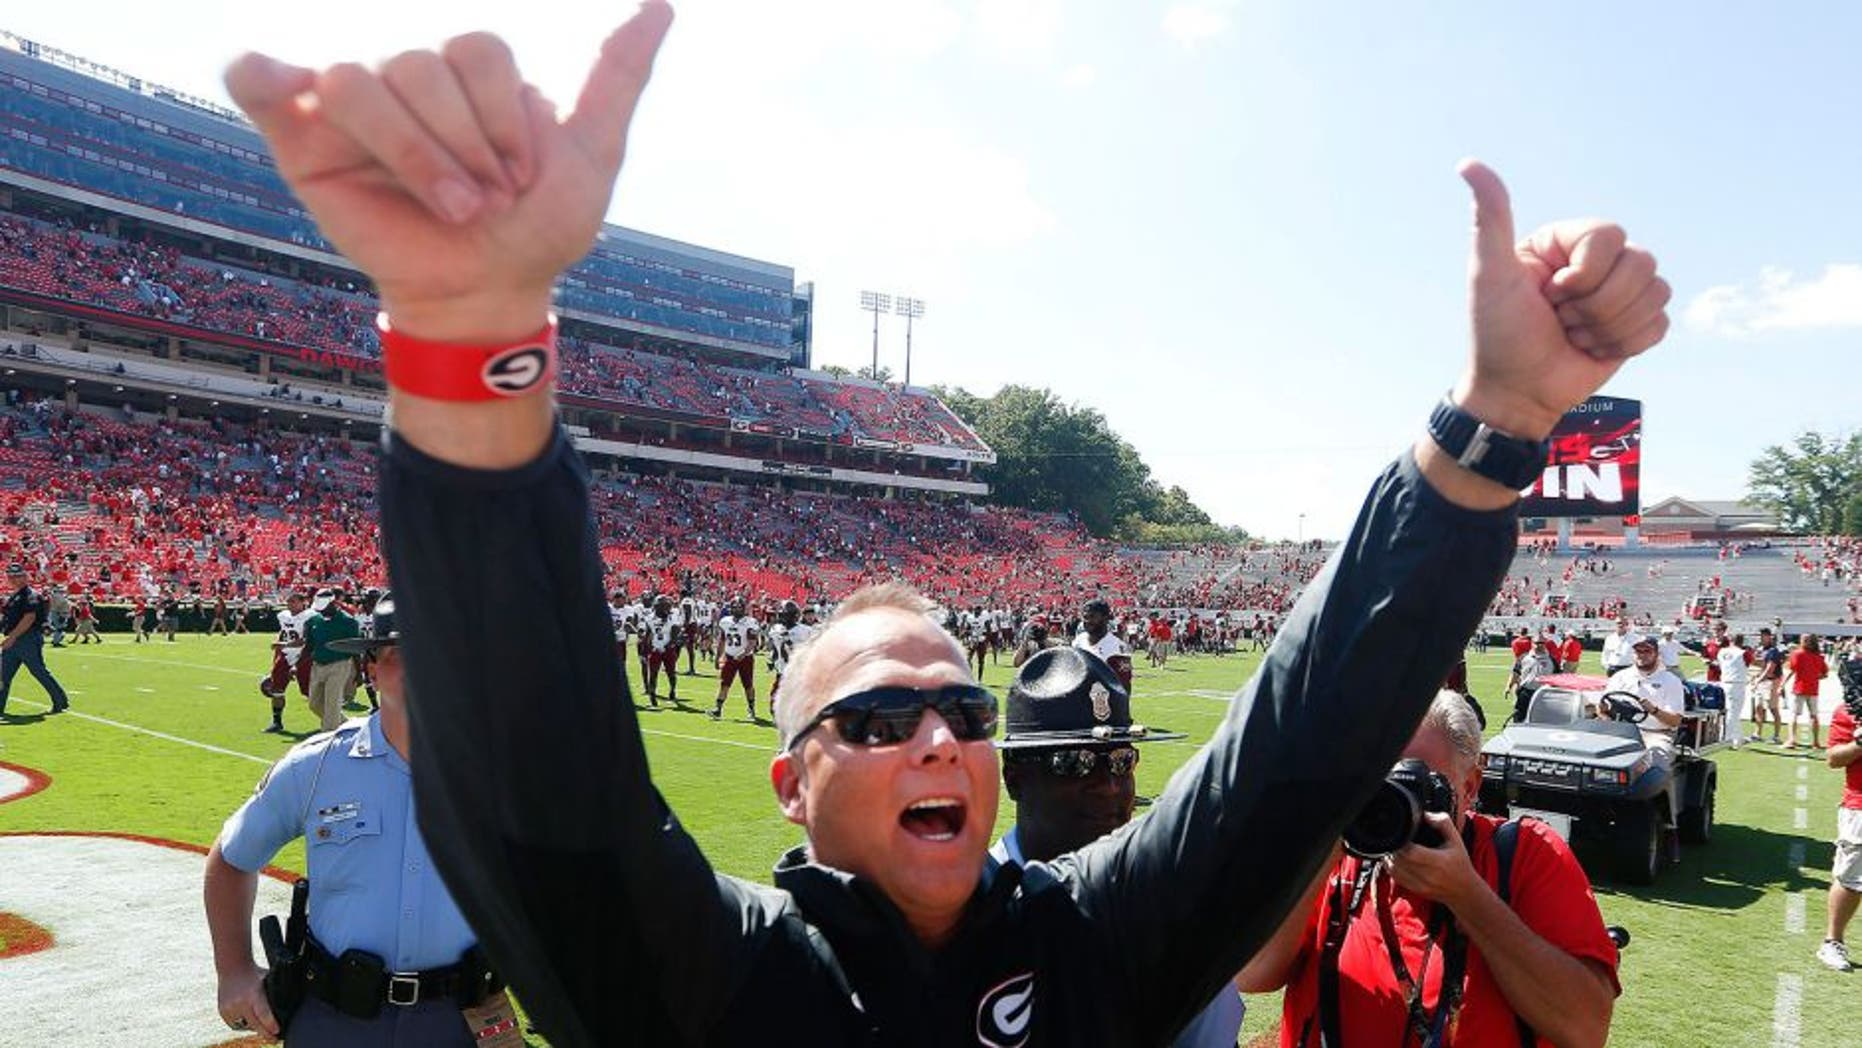 Georgia head coach Mark Richt gestures toward the crowd after defeating Troy 66-0 in an NCAA college football game, Saturday, Sept. 20, 2014, in Athens, Ga. (AP Photo/John Bazemore)